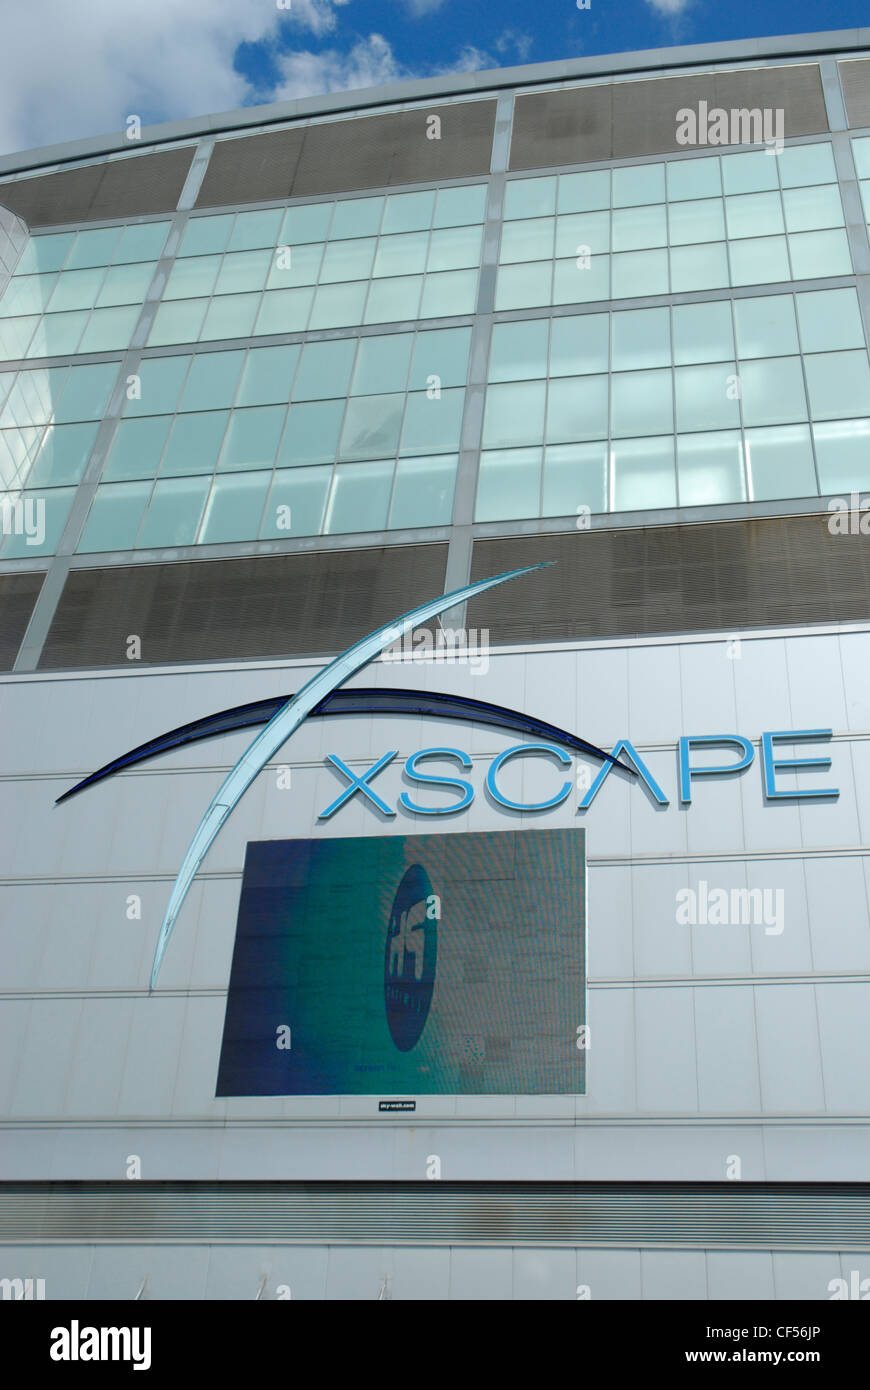 Exterior Of The Xscape Sports And Entertainment Complex In Milton Keynes.    Stock Image